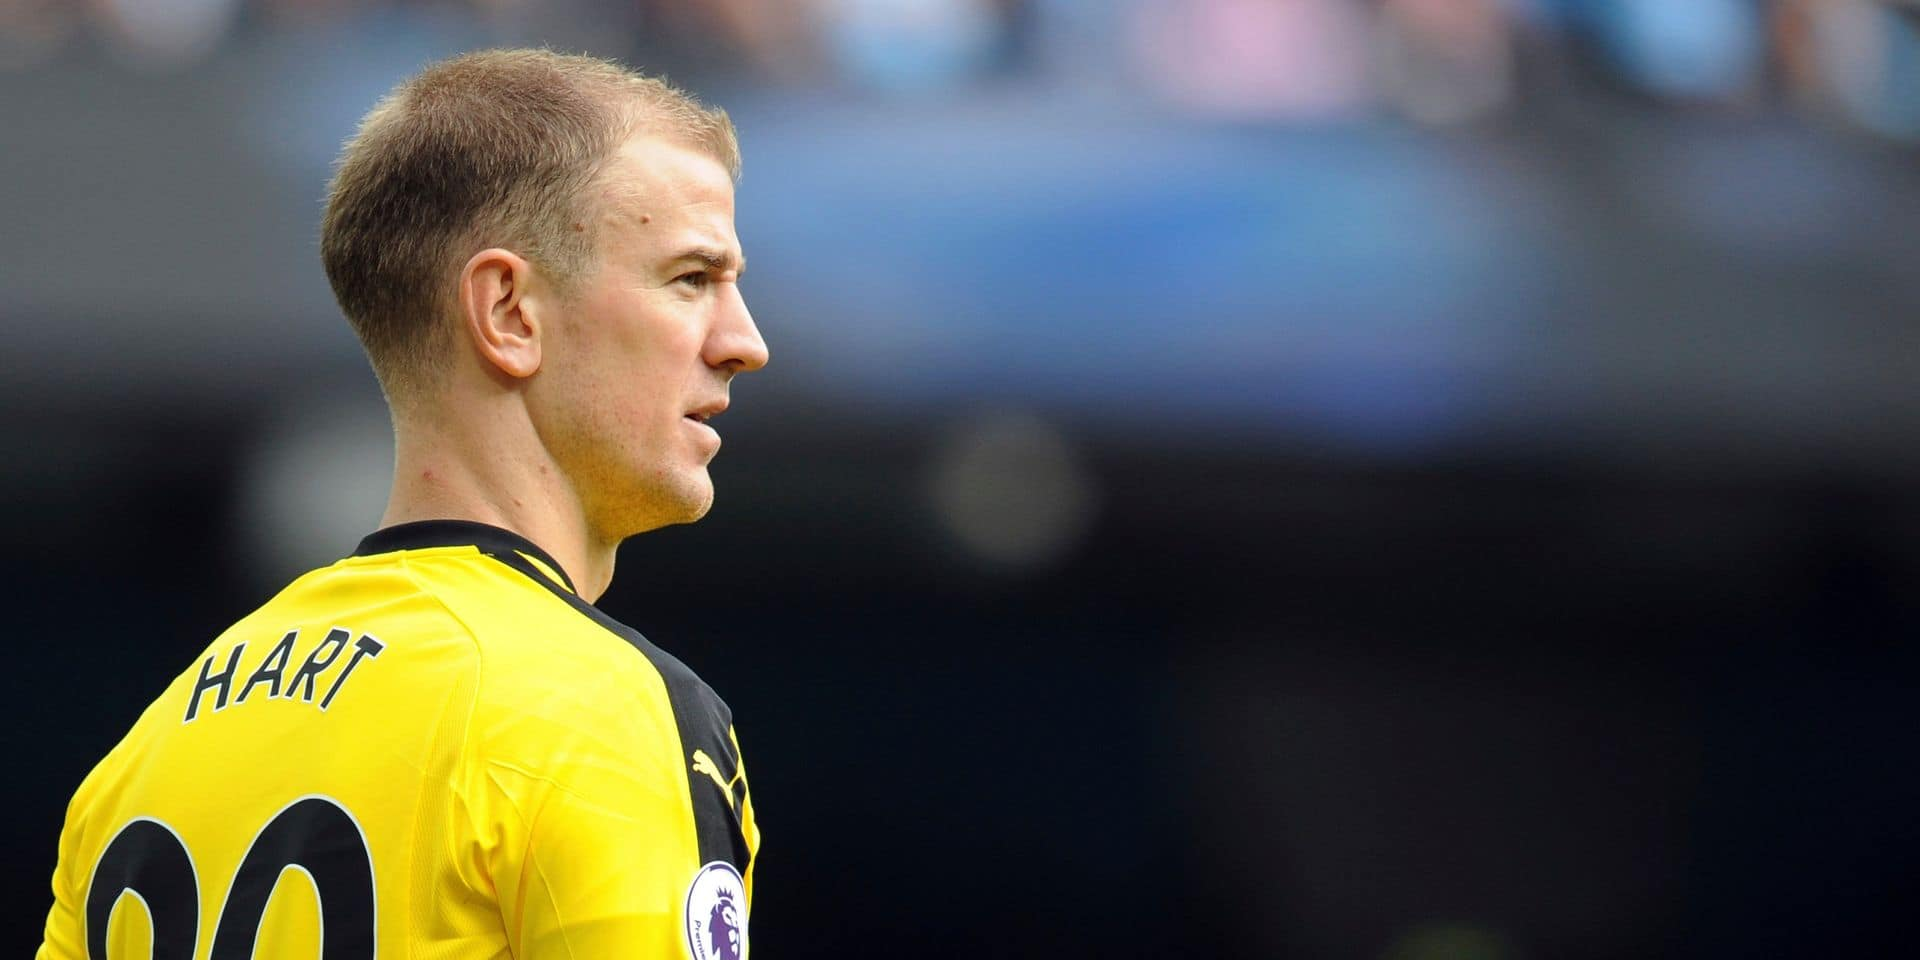 Burnley goalkeeper Joe Hart looks out during the English Premier League soccer match between Manchester City and Burnley at Etihad stadium in Manchester, England, Saturday, Oct. 20, 2018. (AP Photo/Rui Vieira)